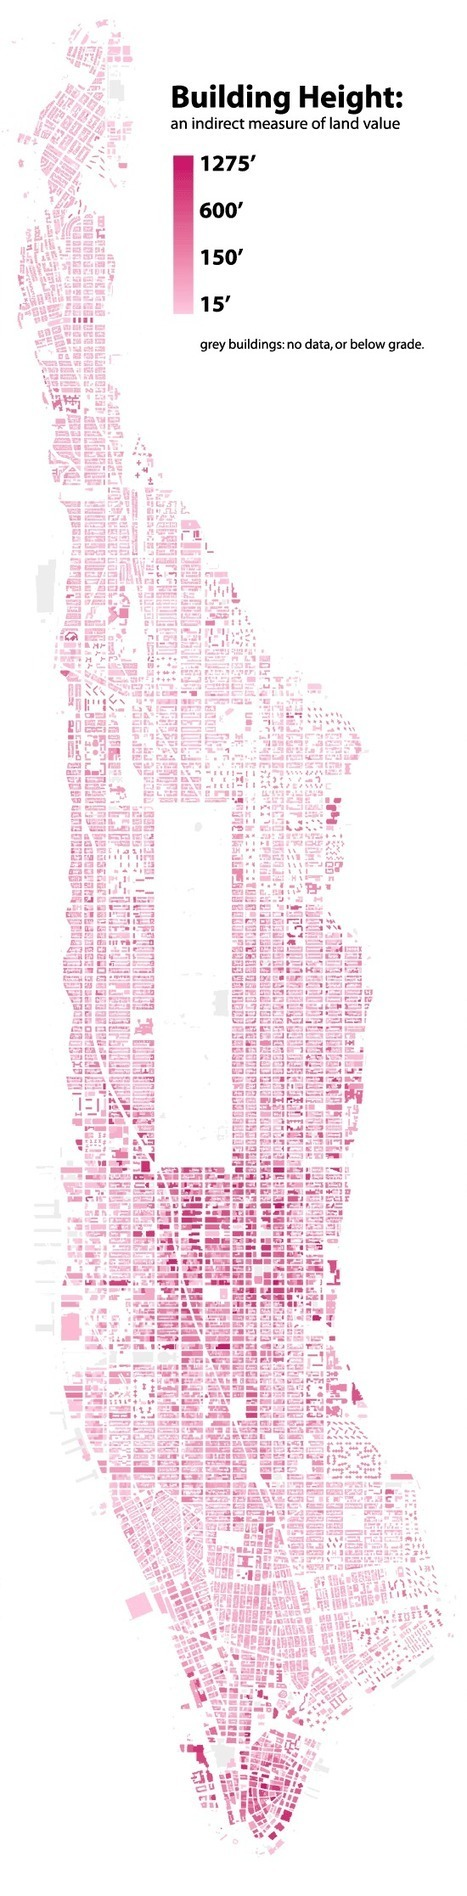 Manhattan Building Heights as LandValue  -   Cool Infographics | Modern Ruins, Decay and Urban Exploration | Scoop.it